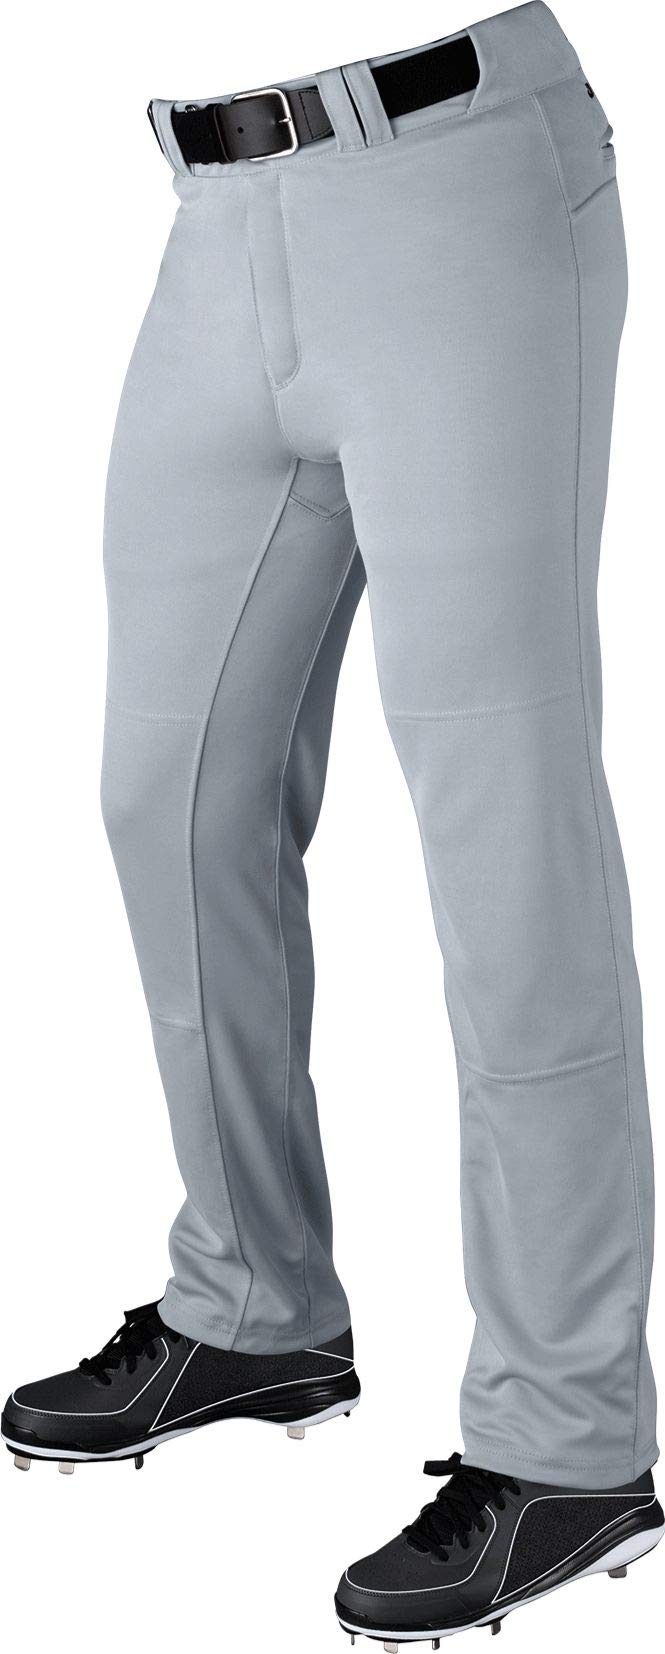 DeMarini Youth Uprising Baseball Pant by DeMarini